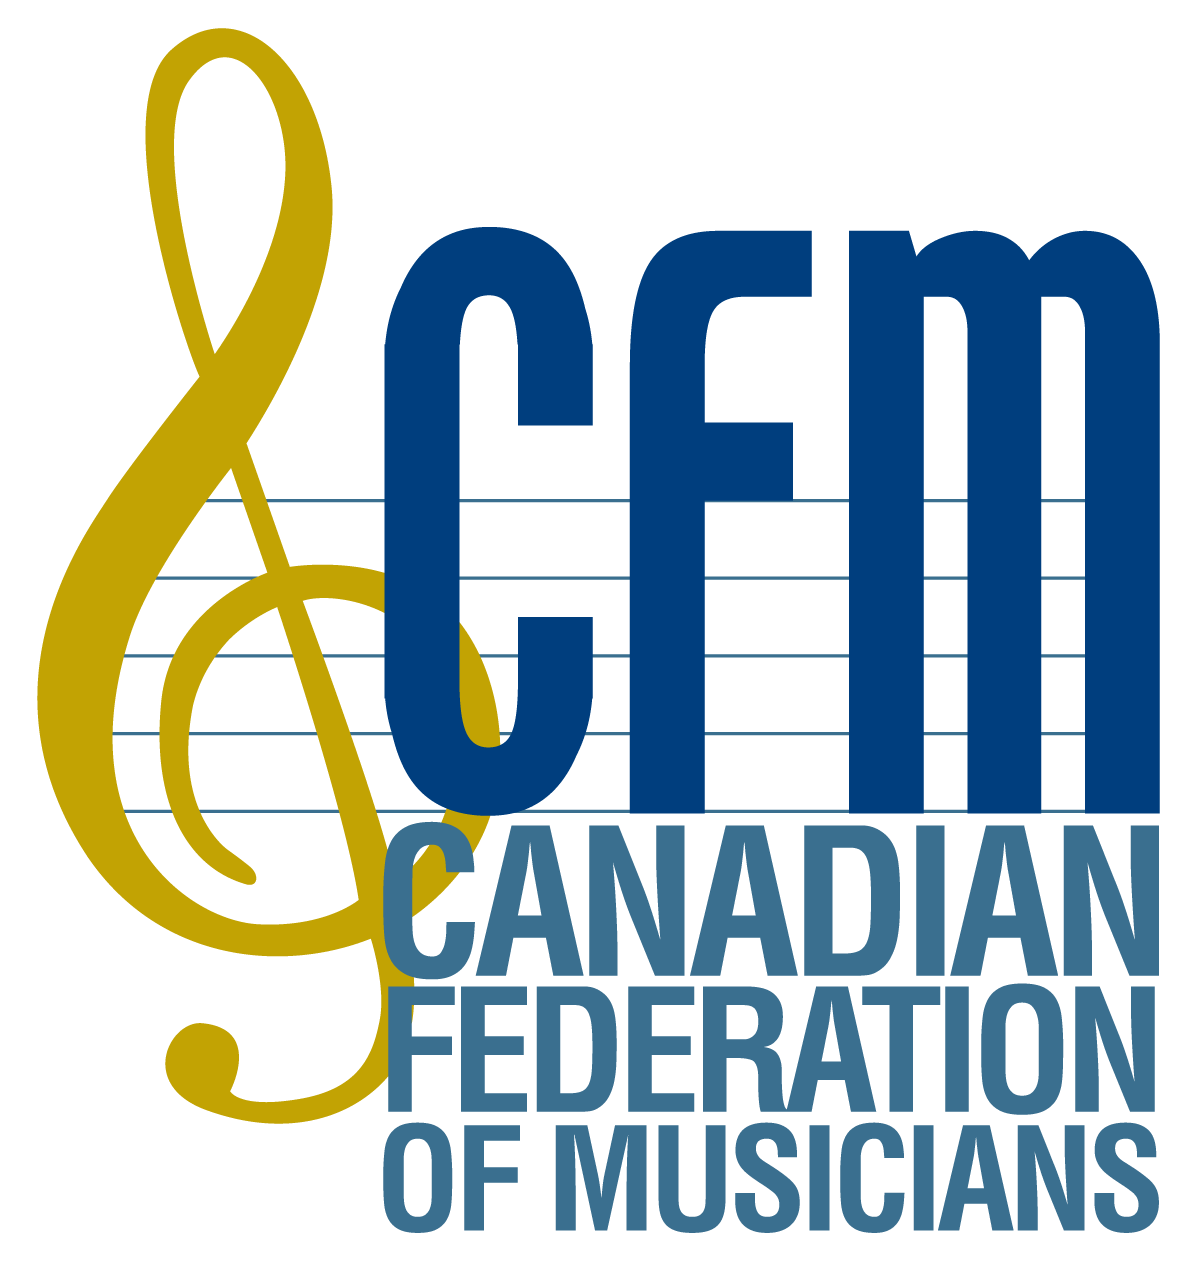 Canadian Federation of Musicians